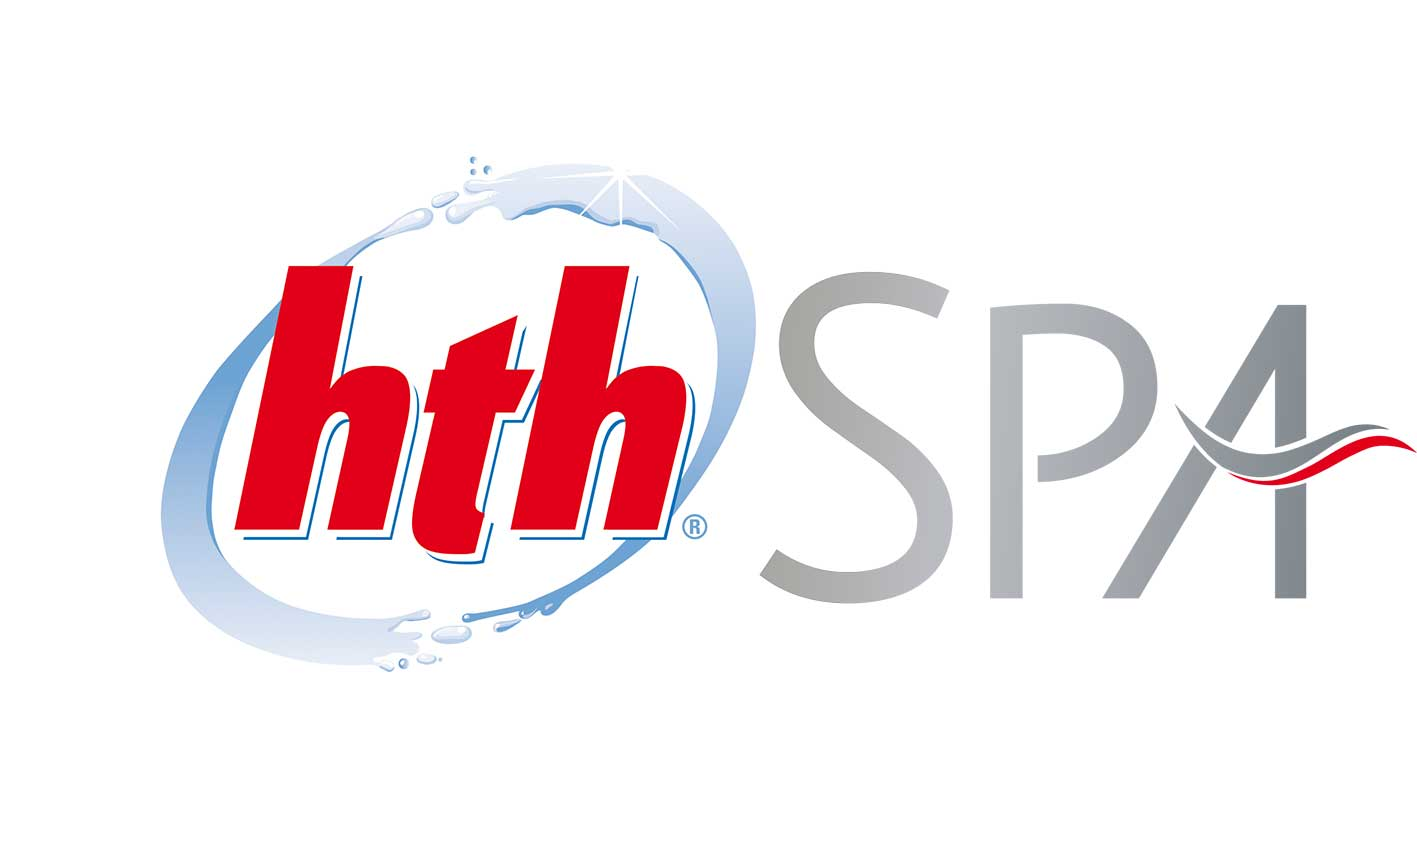 hth brand tips for spa treatment